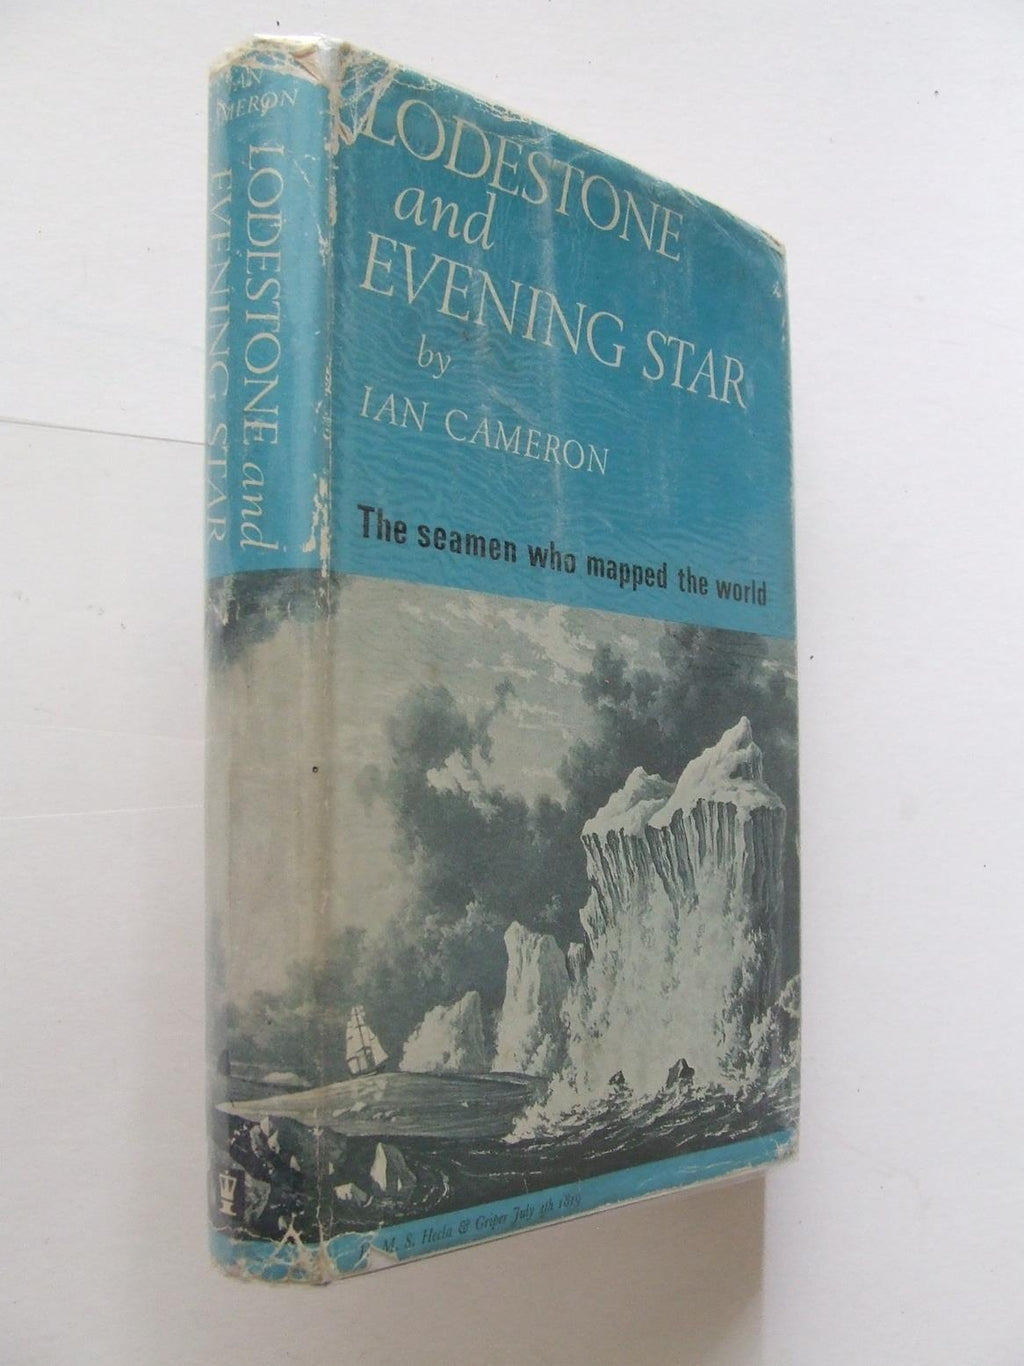 Lodestone and Evening Star, the saga of exploration by sea